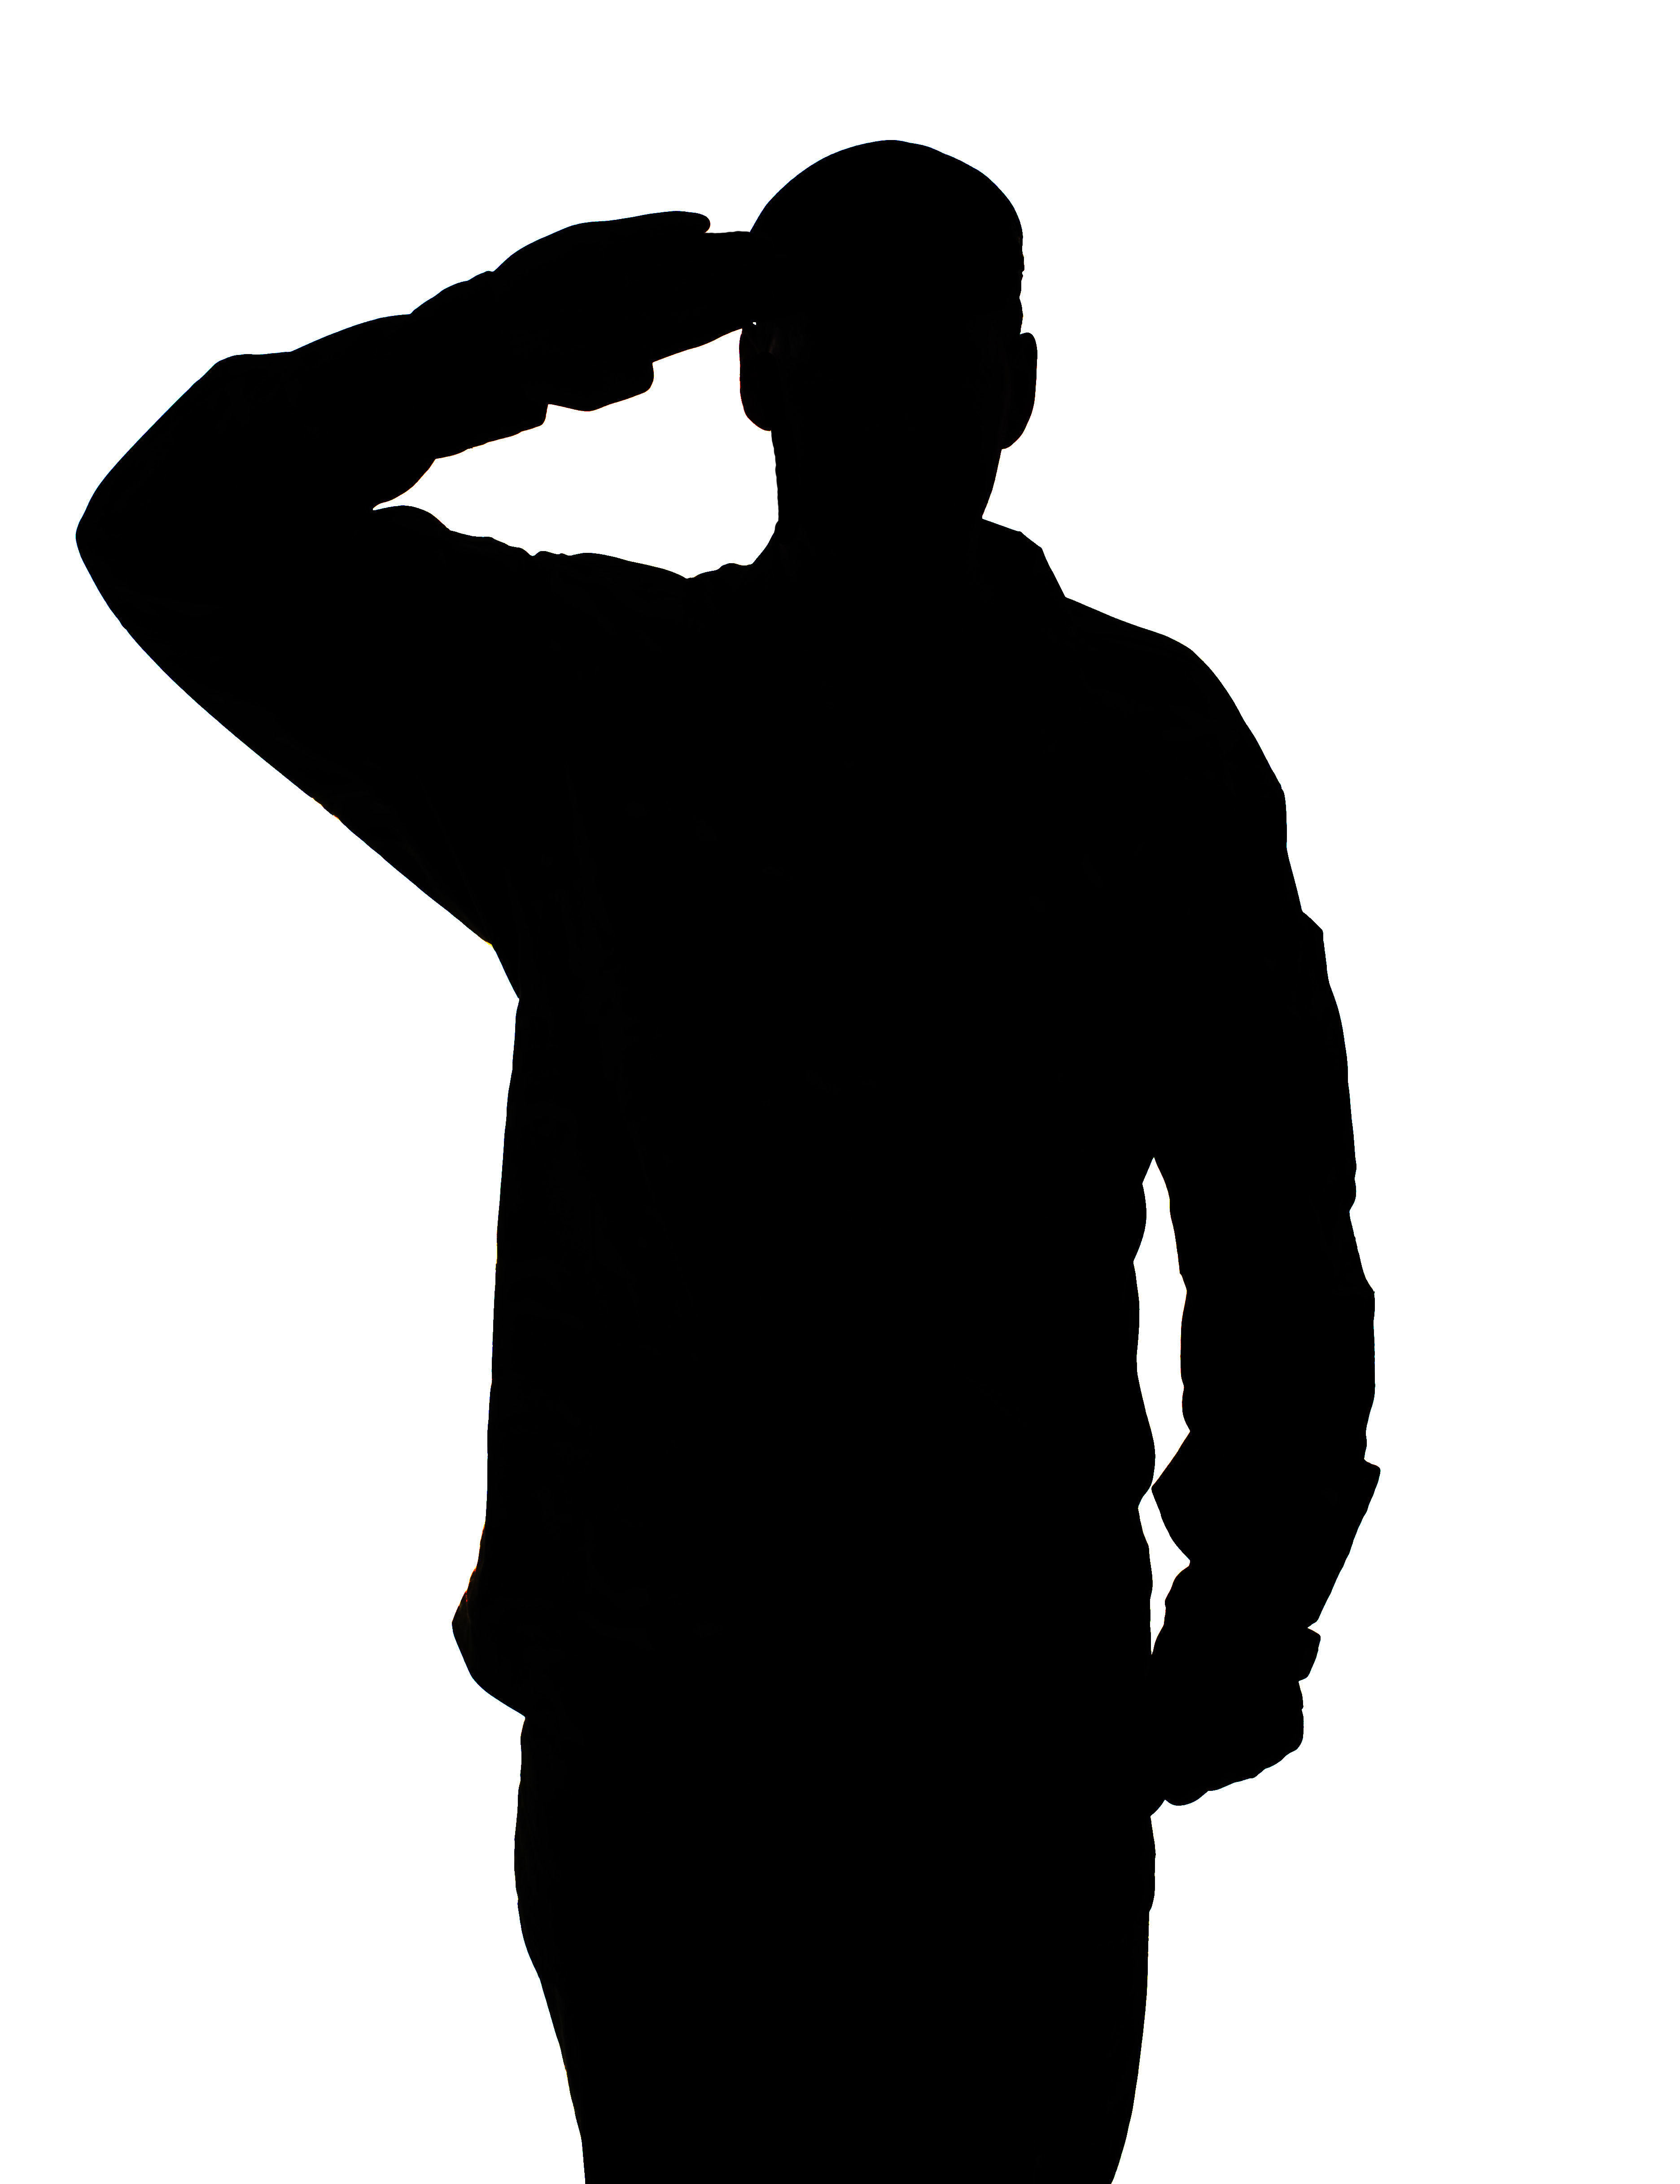 American Soldier Saluting Clipart.